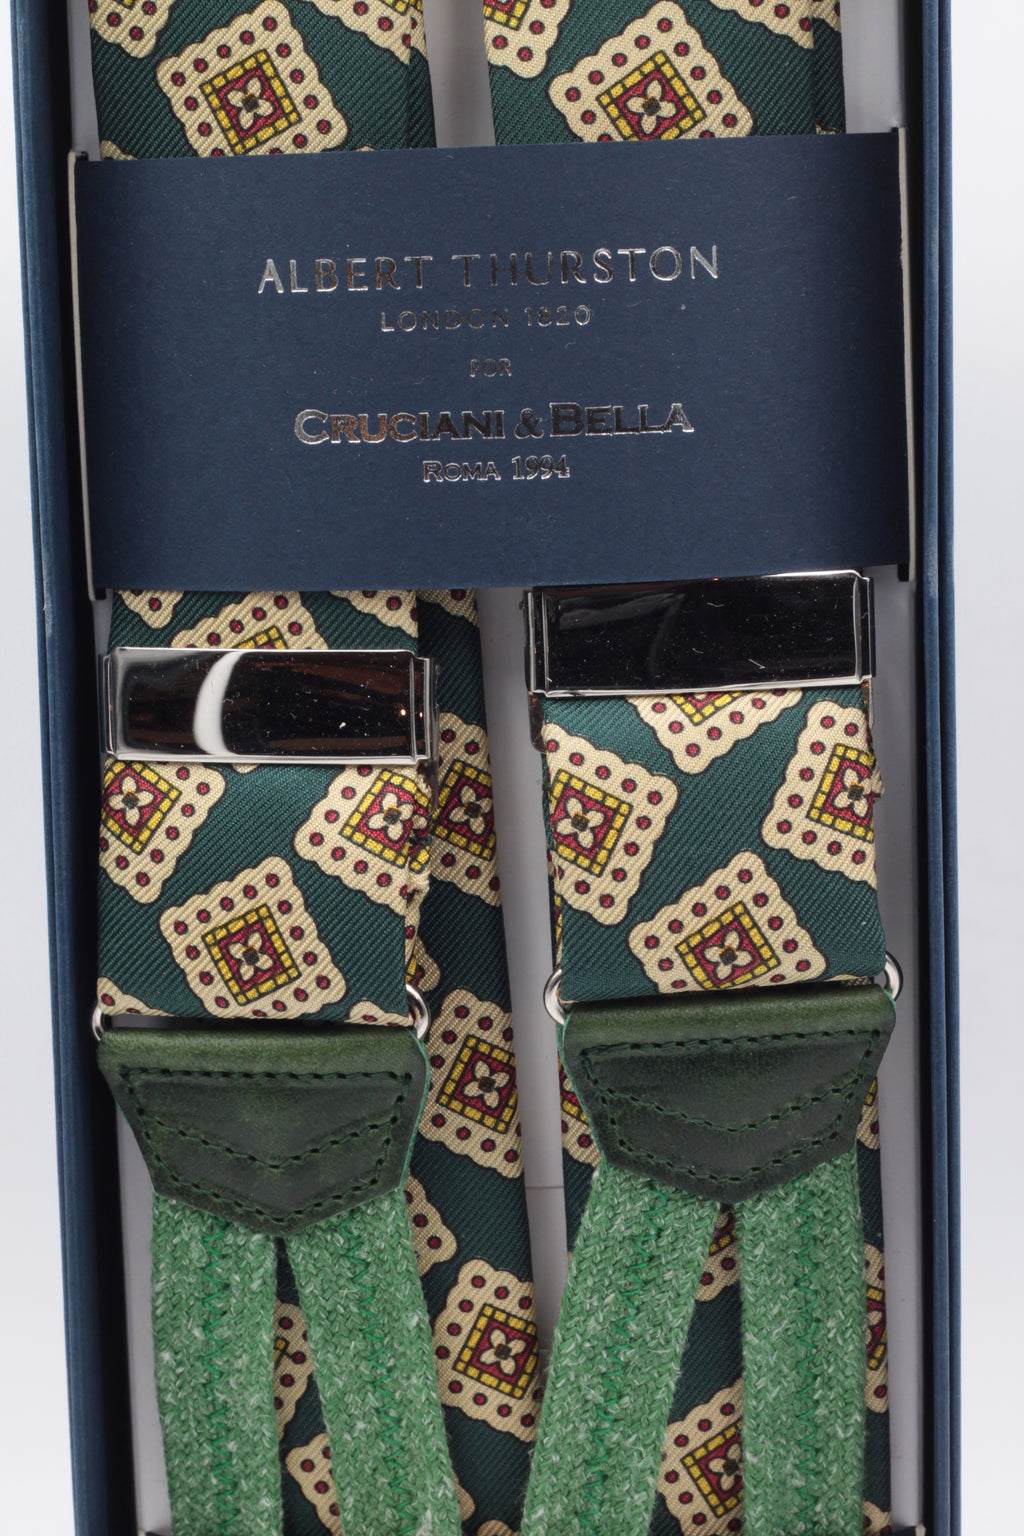 Albert Thurston for Cruciani & Bella Made in England Adjustable Sizing 40 mm Green, beige motif braces Braid ends Y-Shaped Nickel Fittings